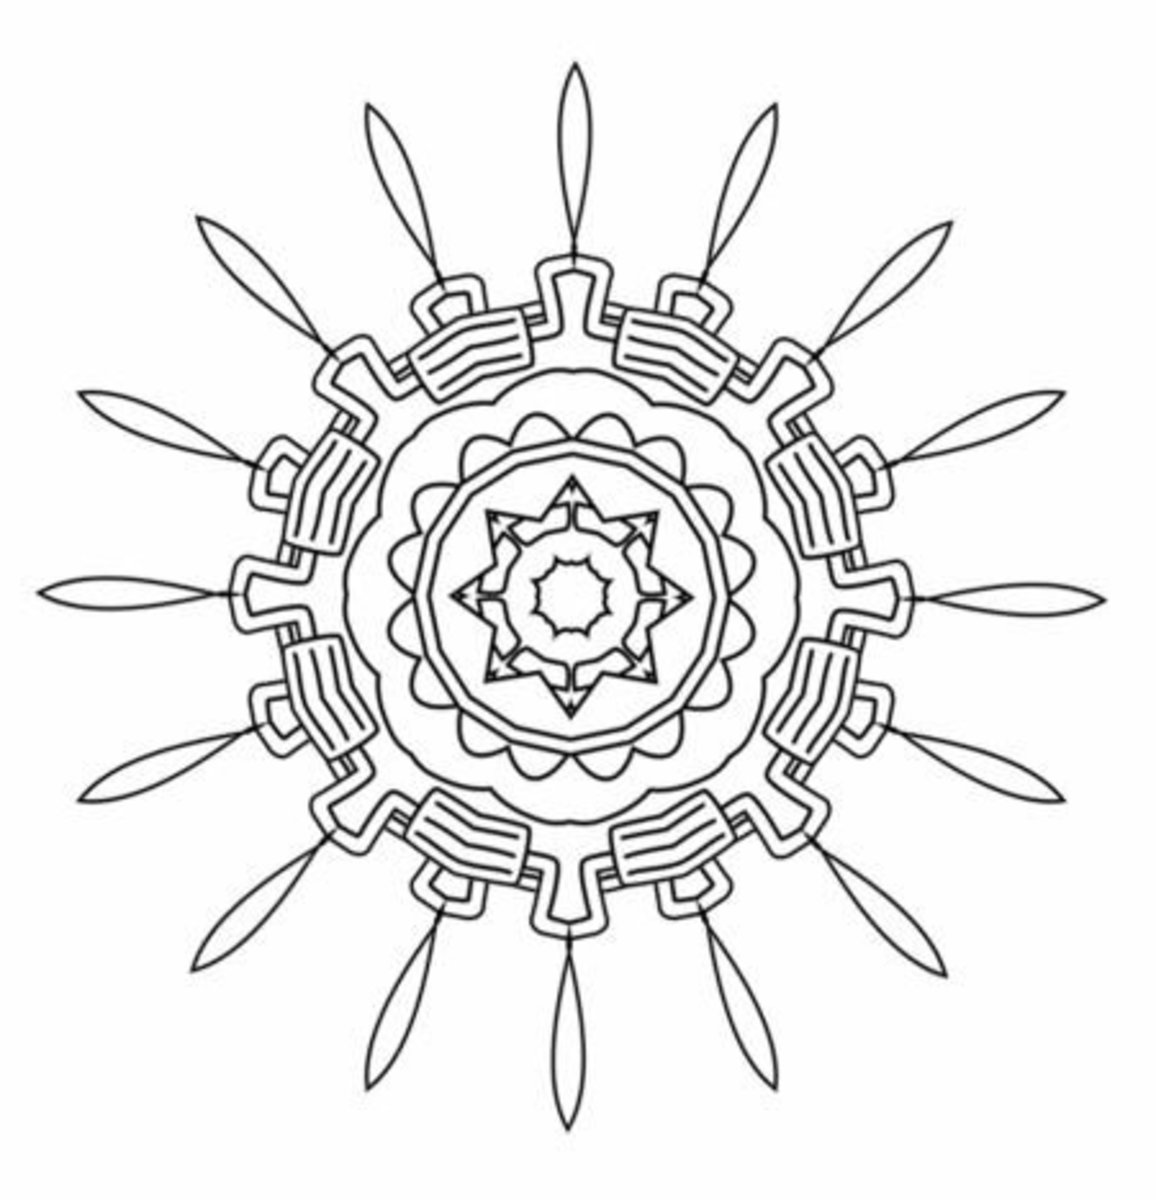 Meditation wheel design coloring page